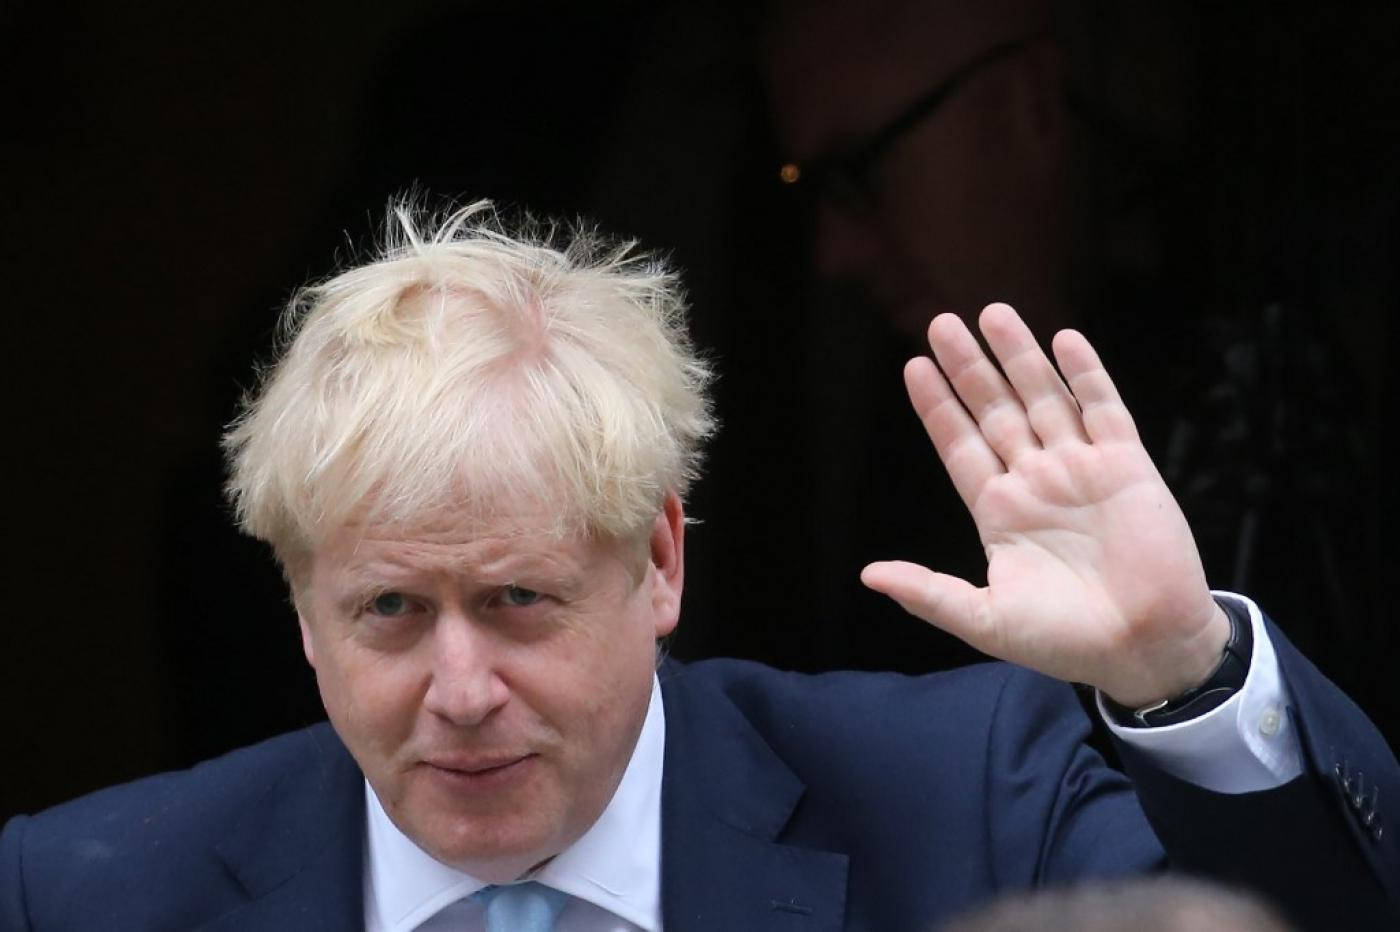 British PM Johnson warns EU he will not delay Brexit